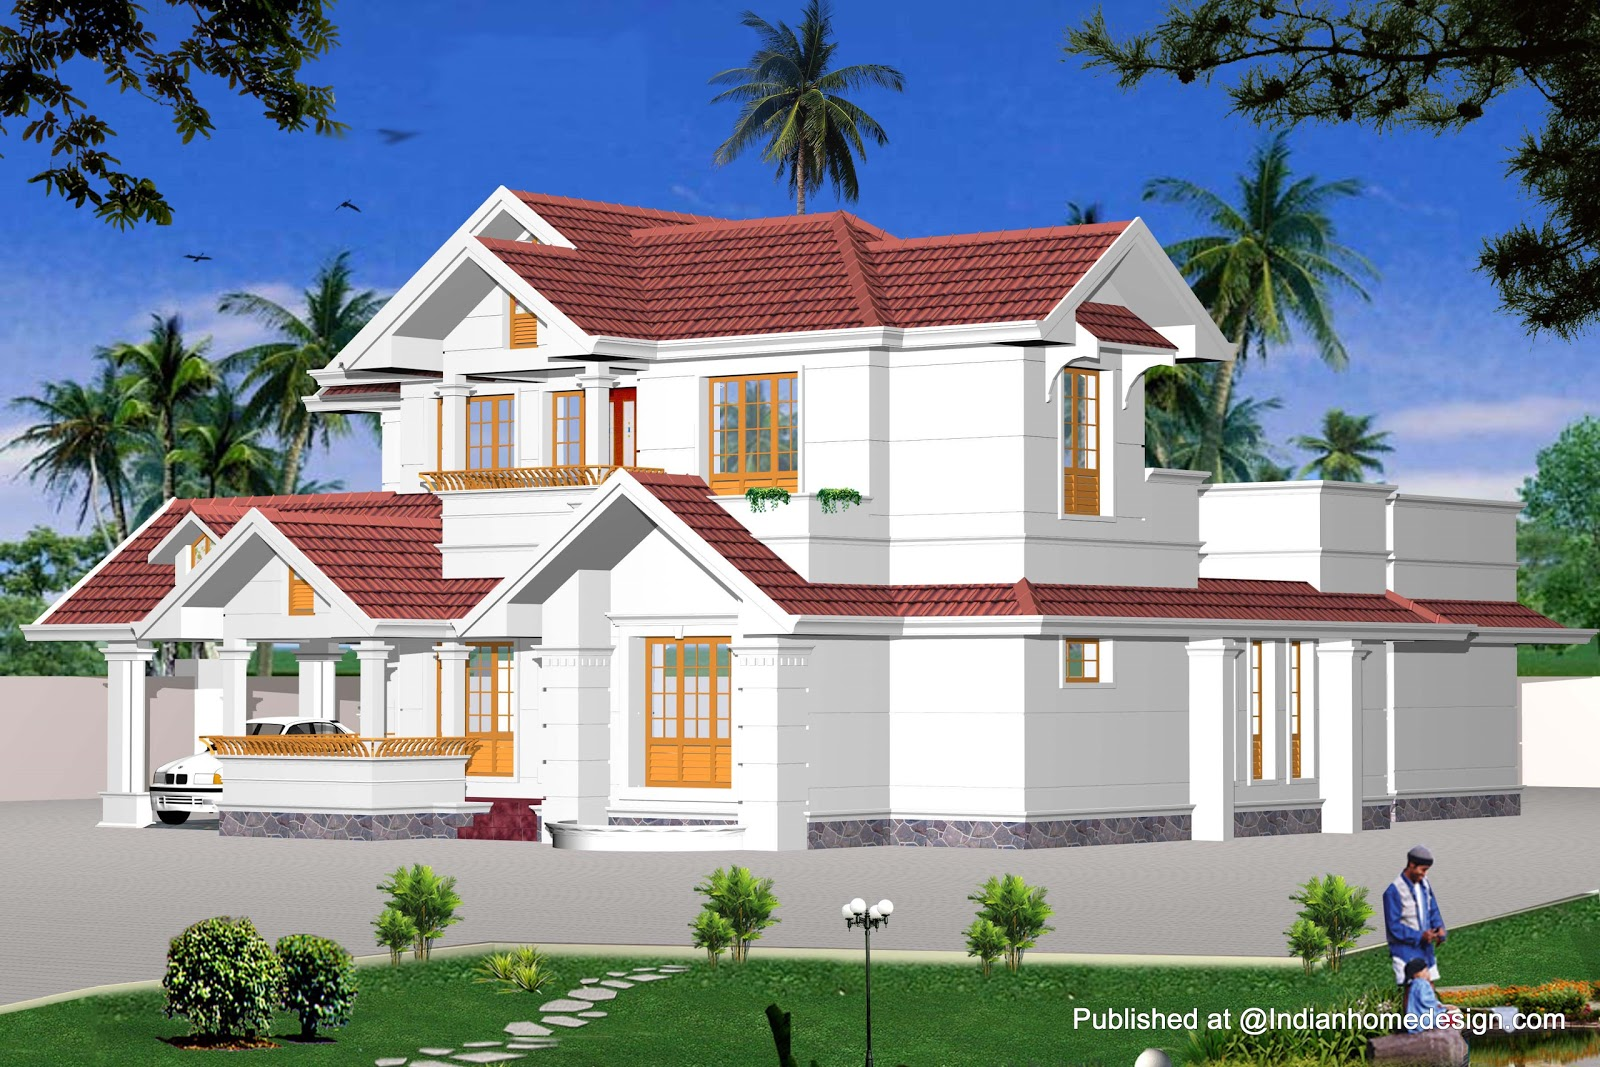 Home ideas for Exterior design of building